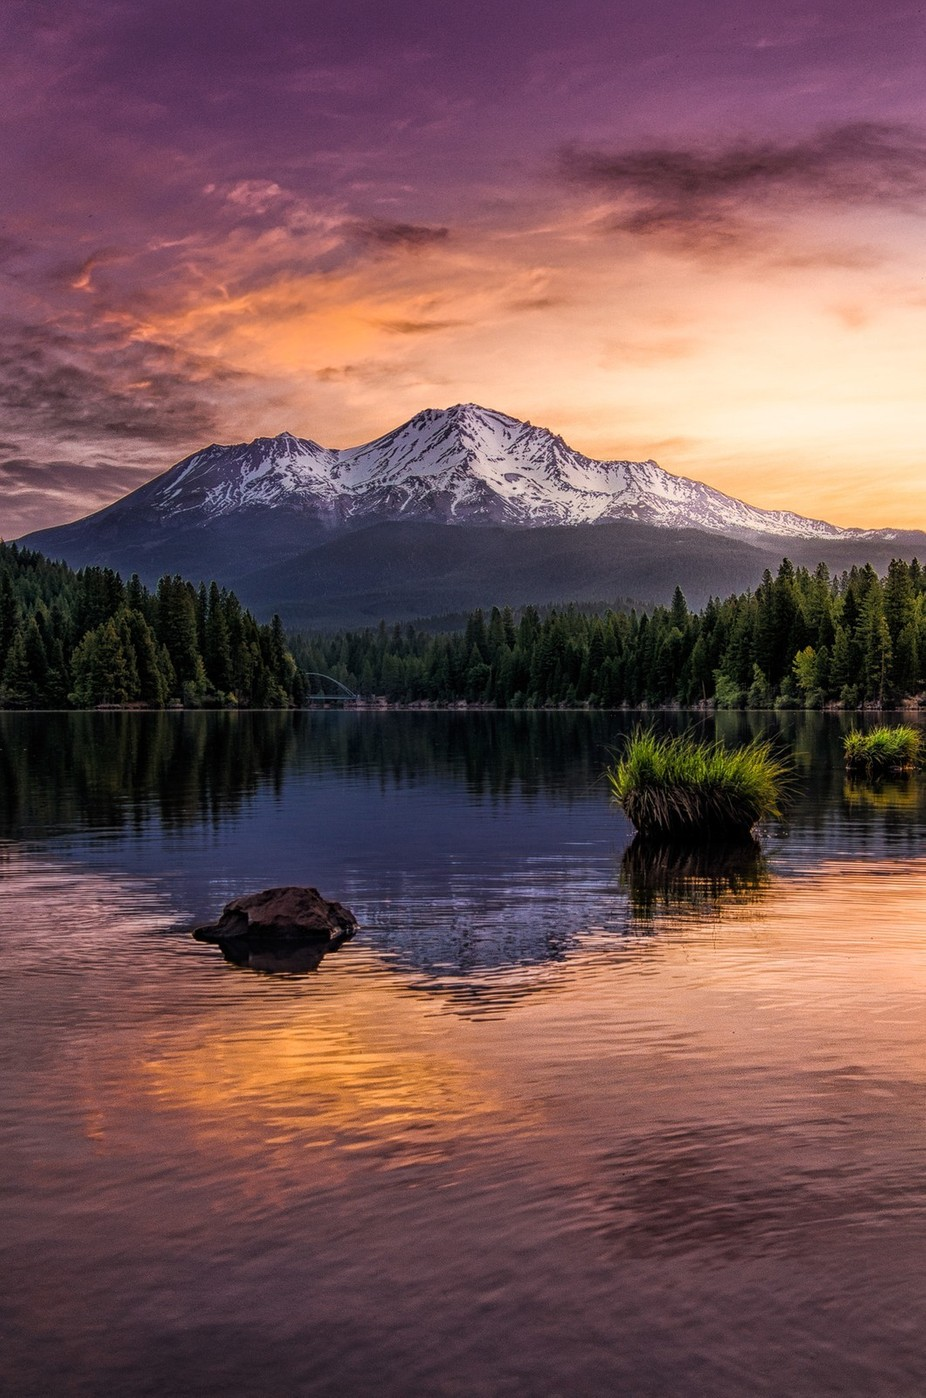 Shasta Revisited by MicahBBurke - Image Of The Month Photo Contest Vol 18